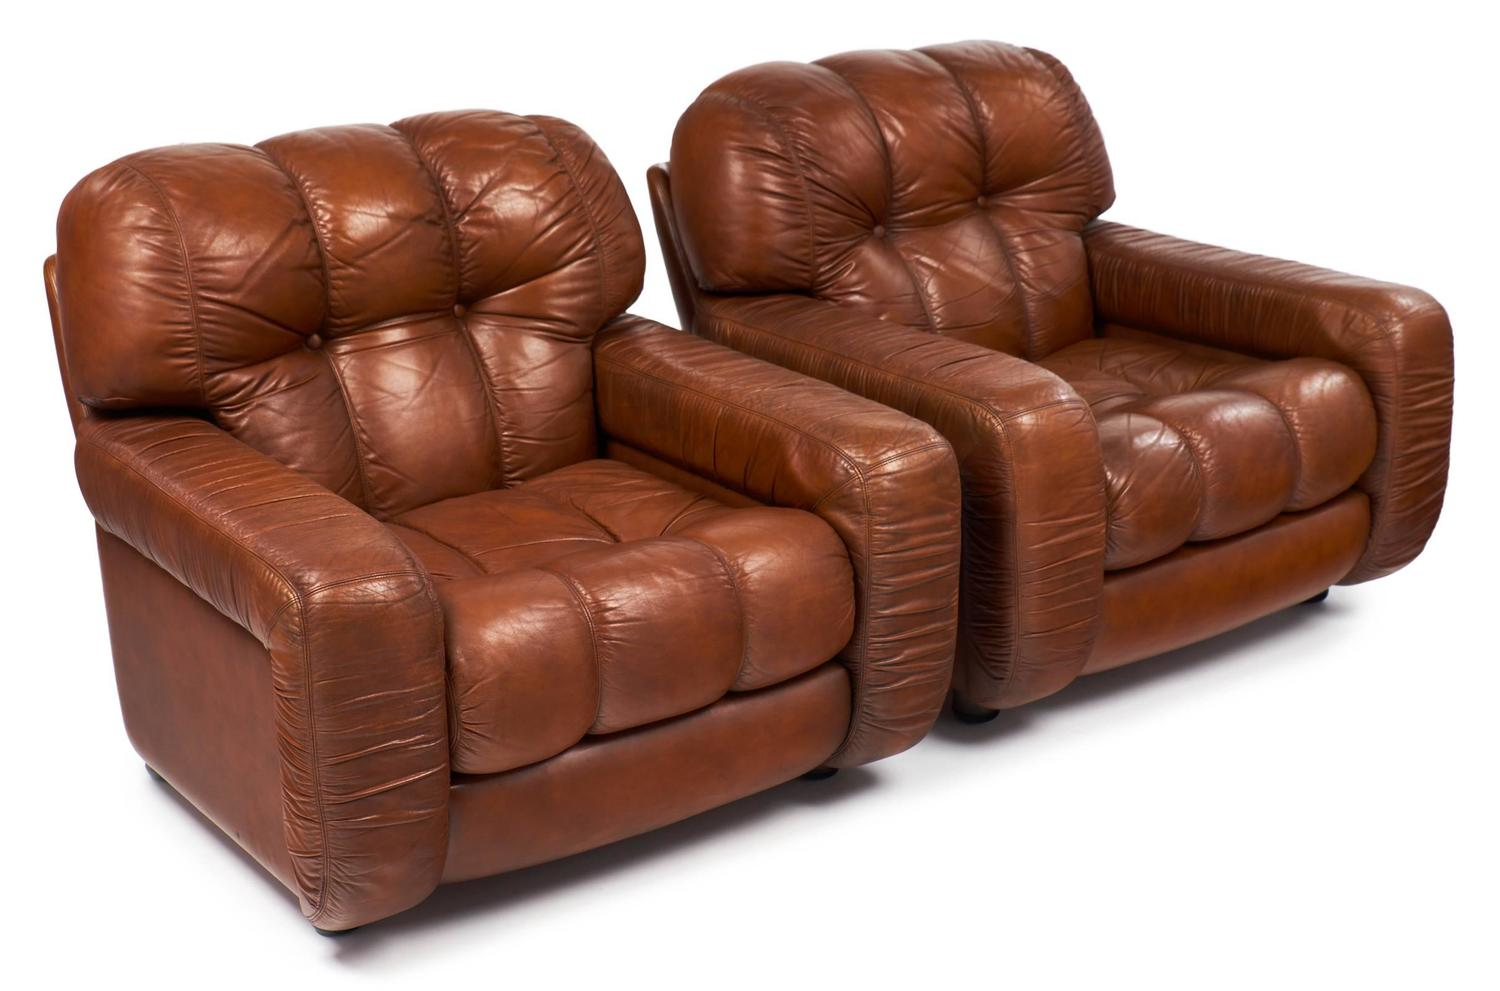 leather club chairs for sale bedroom chair decor french vintage overstuffed at